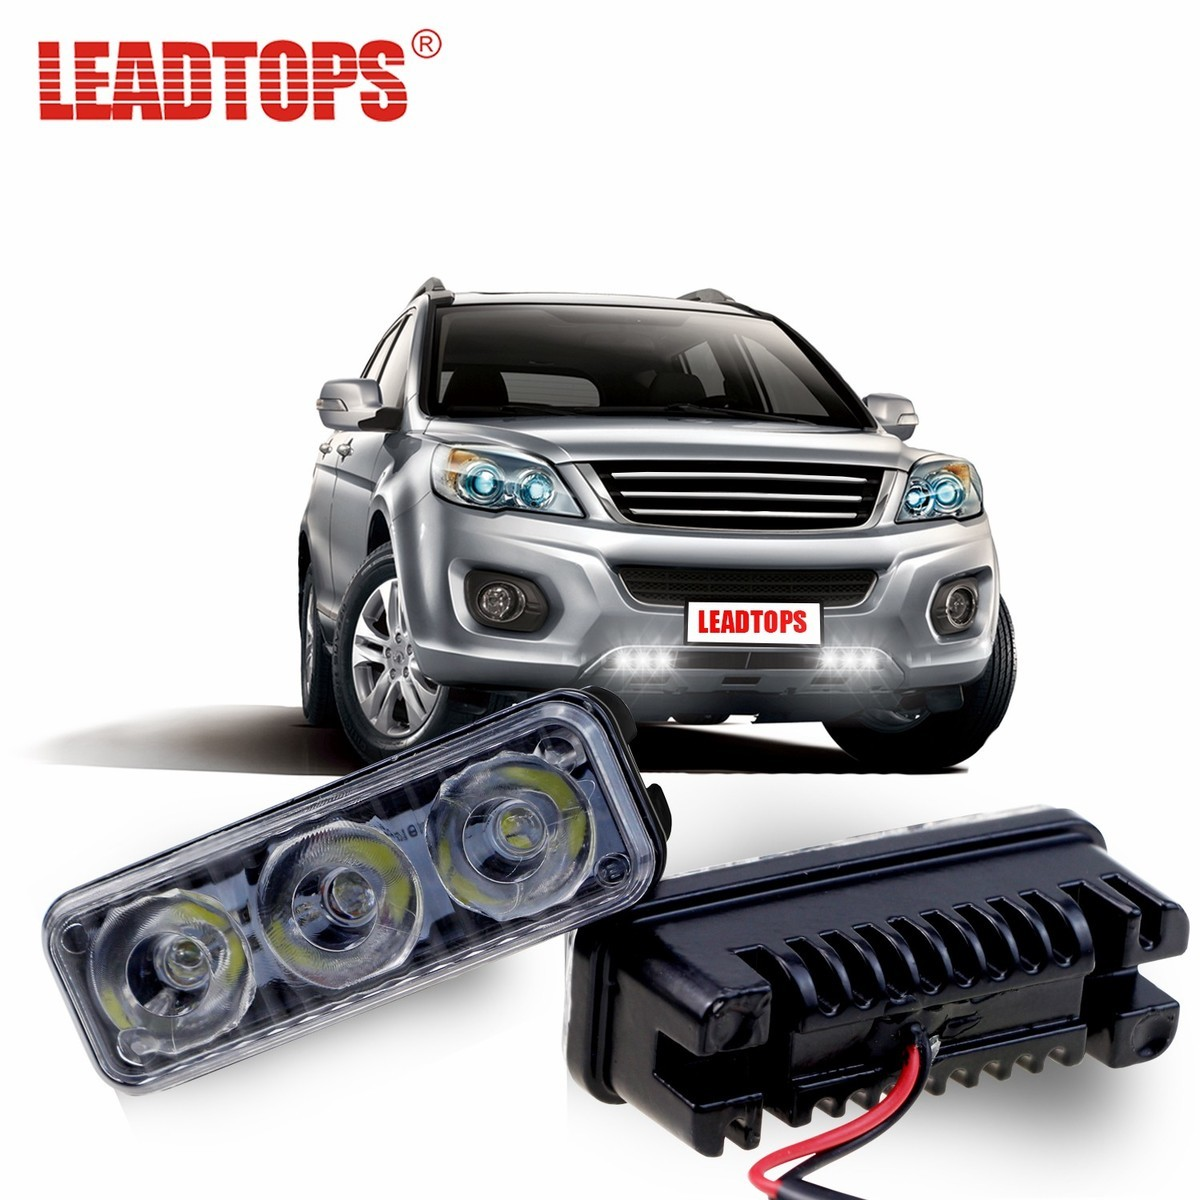 LEADTOPS Waterproof Car High Power Aluminum LED Daytime Running Lights with Lens DC12V Super White 6000K DRL Fog Lamps AJ